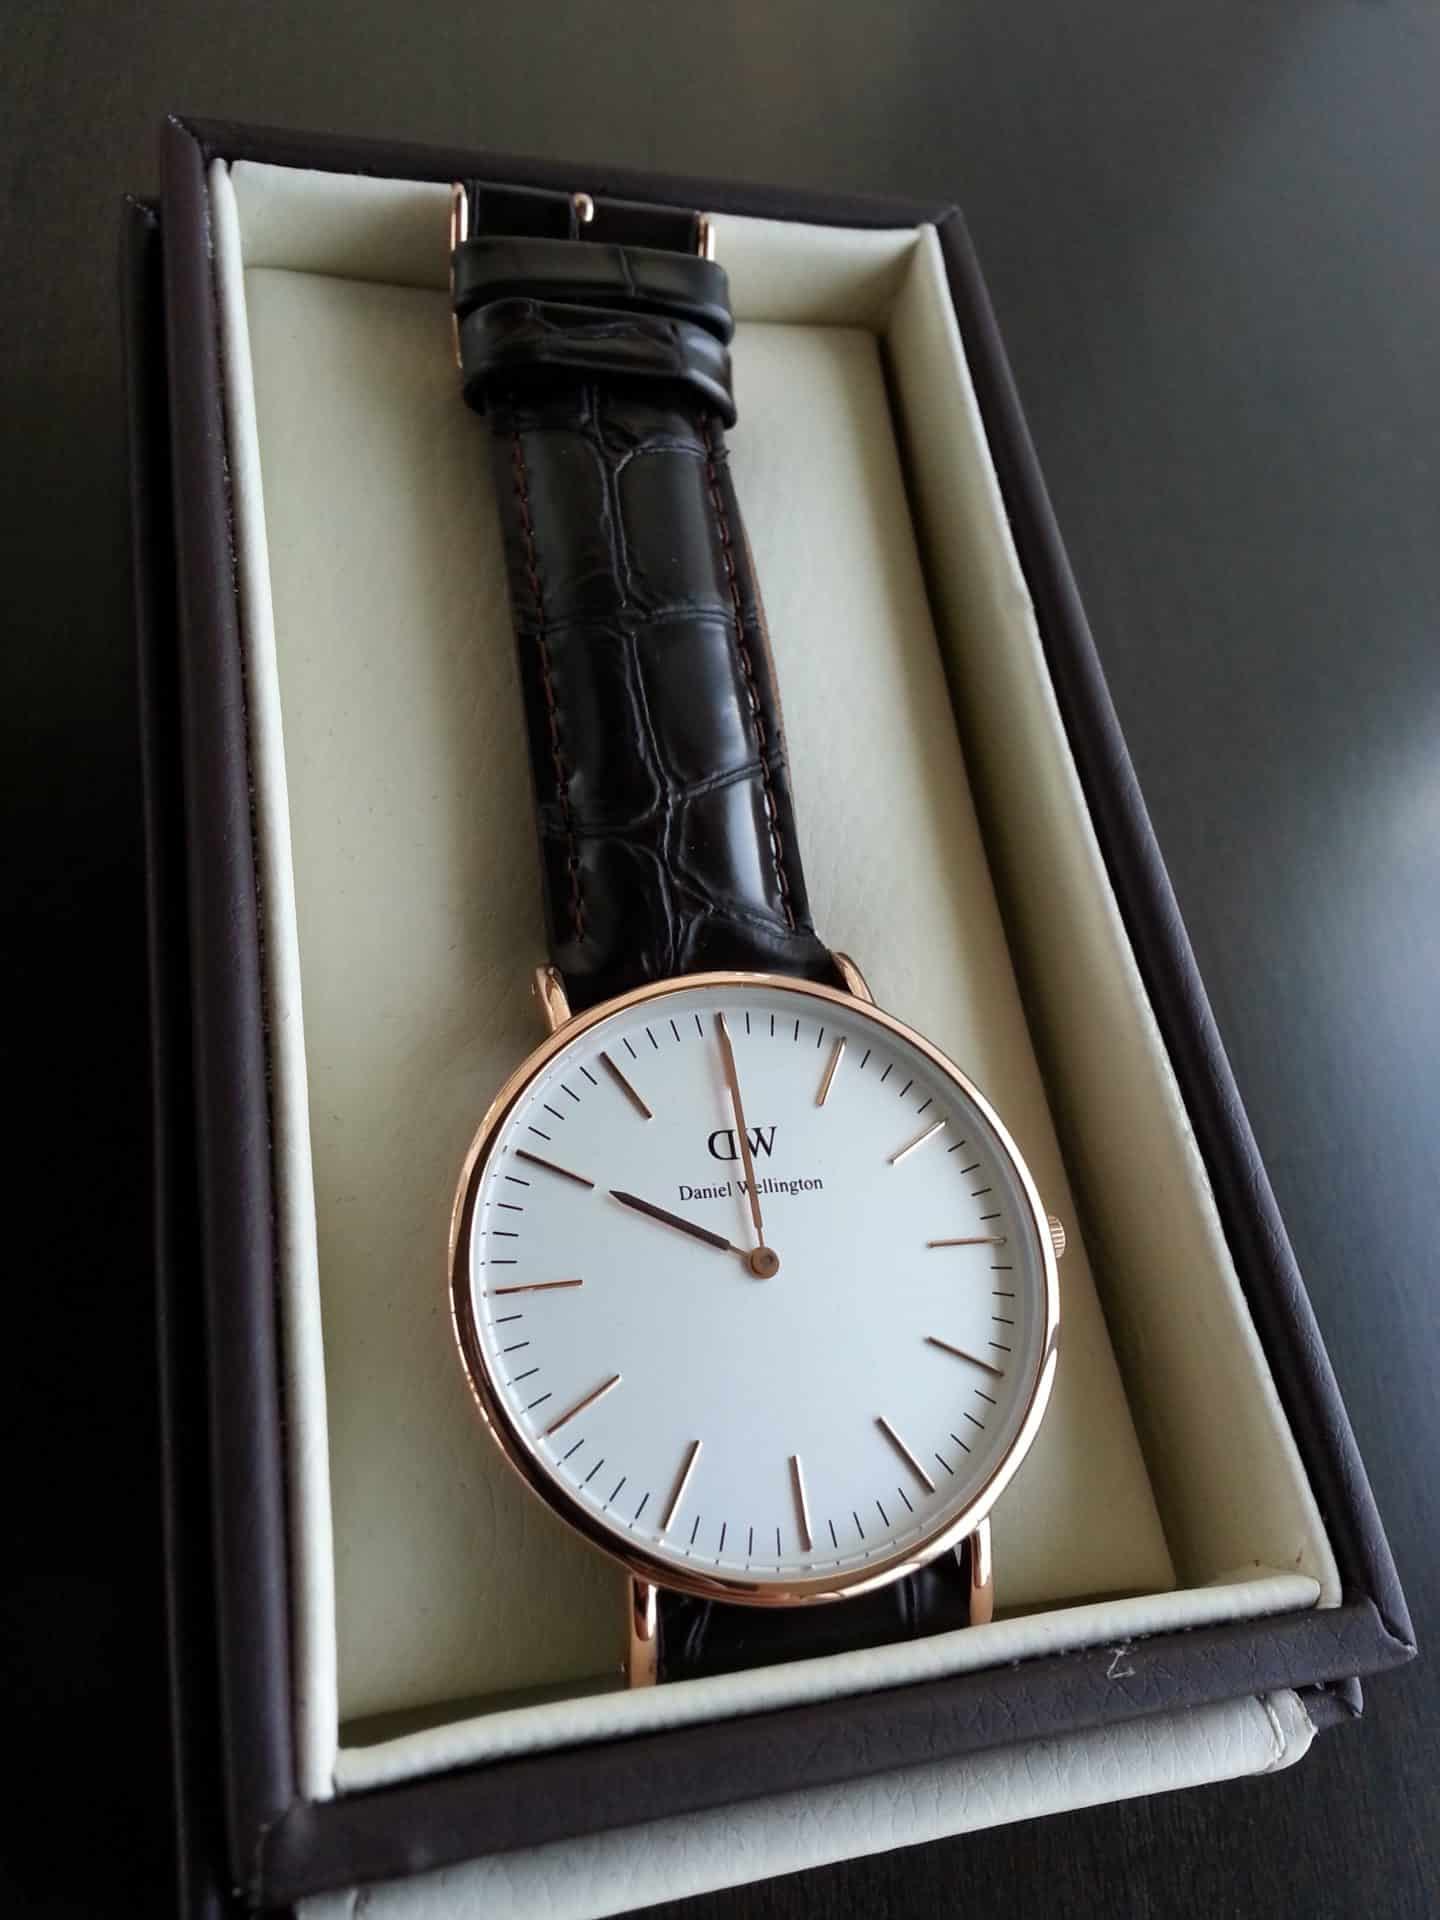 daniel wellington watch review daniel wellington watch in box